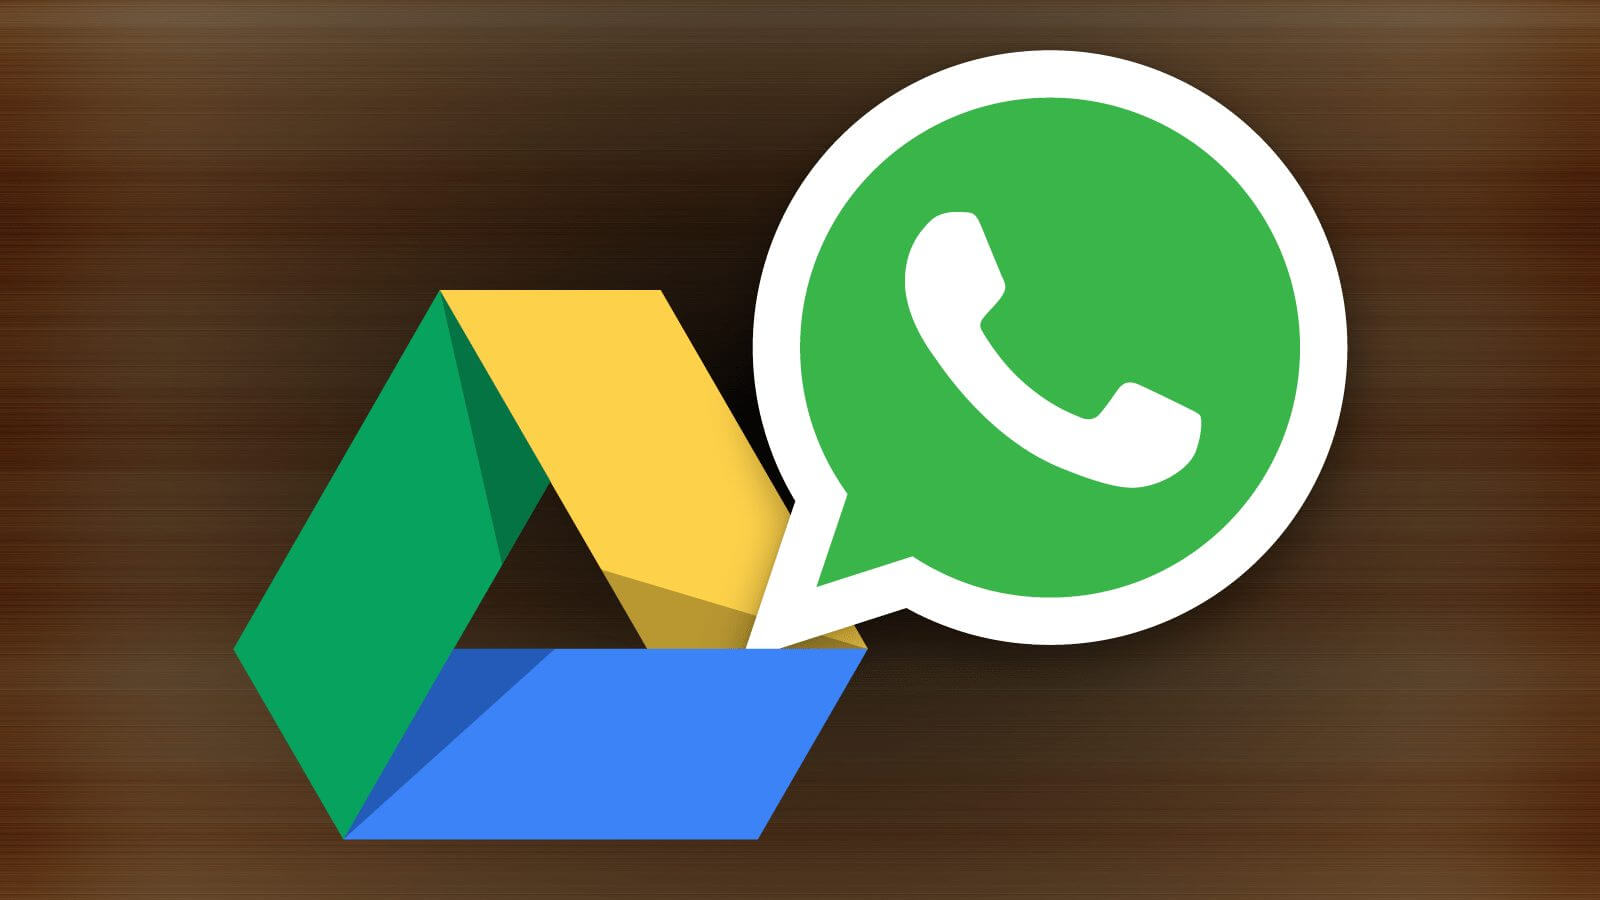 Googledrive whatsapp